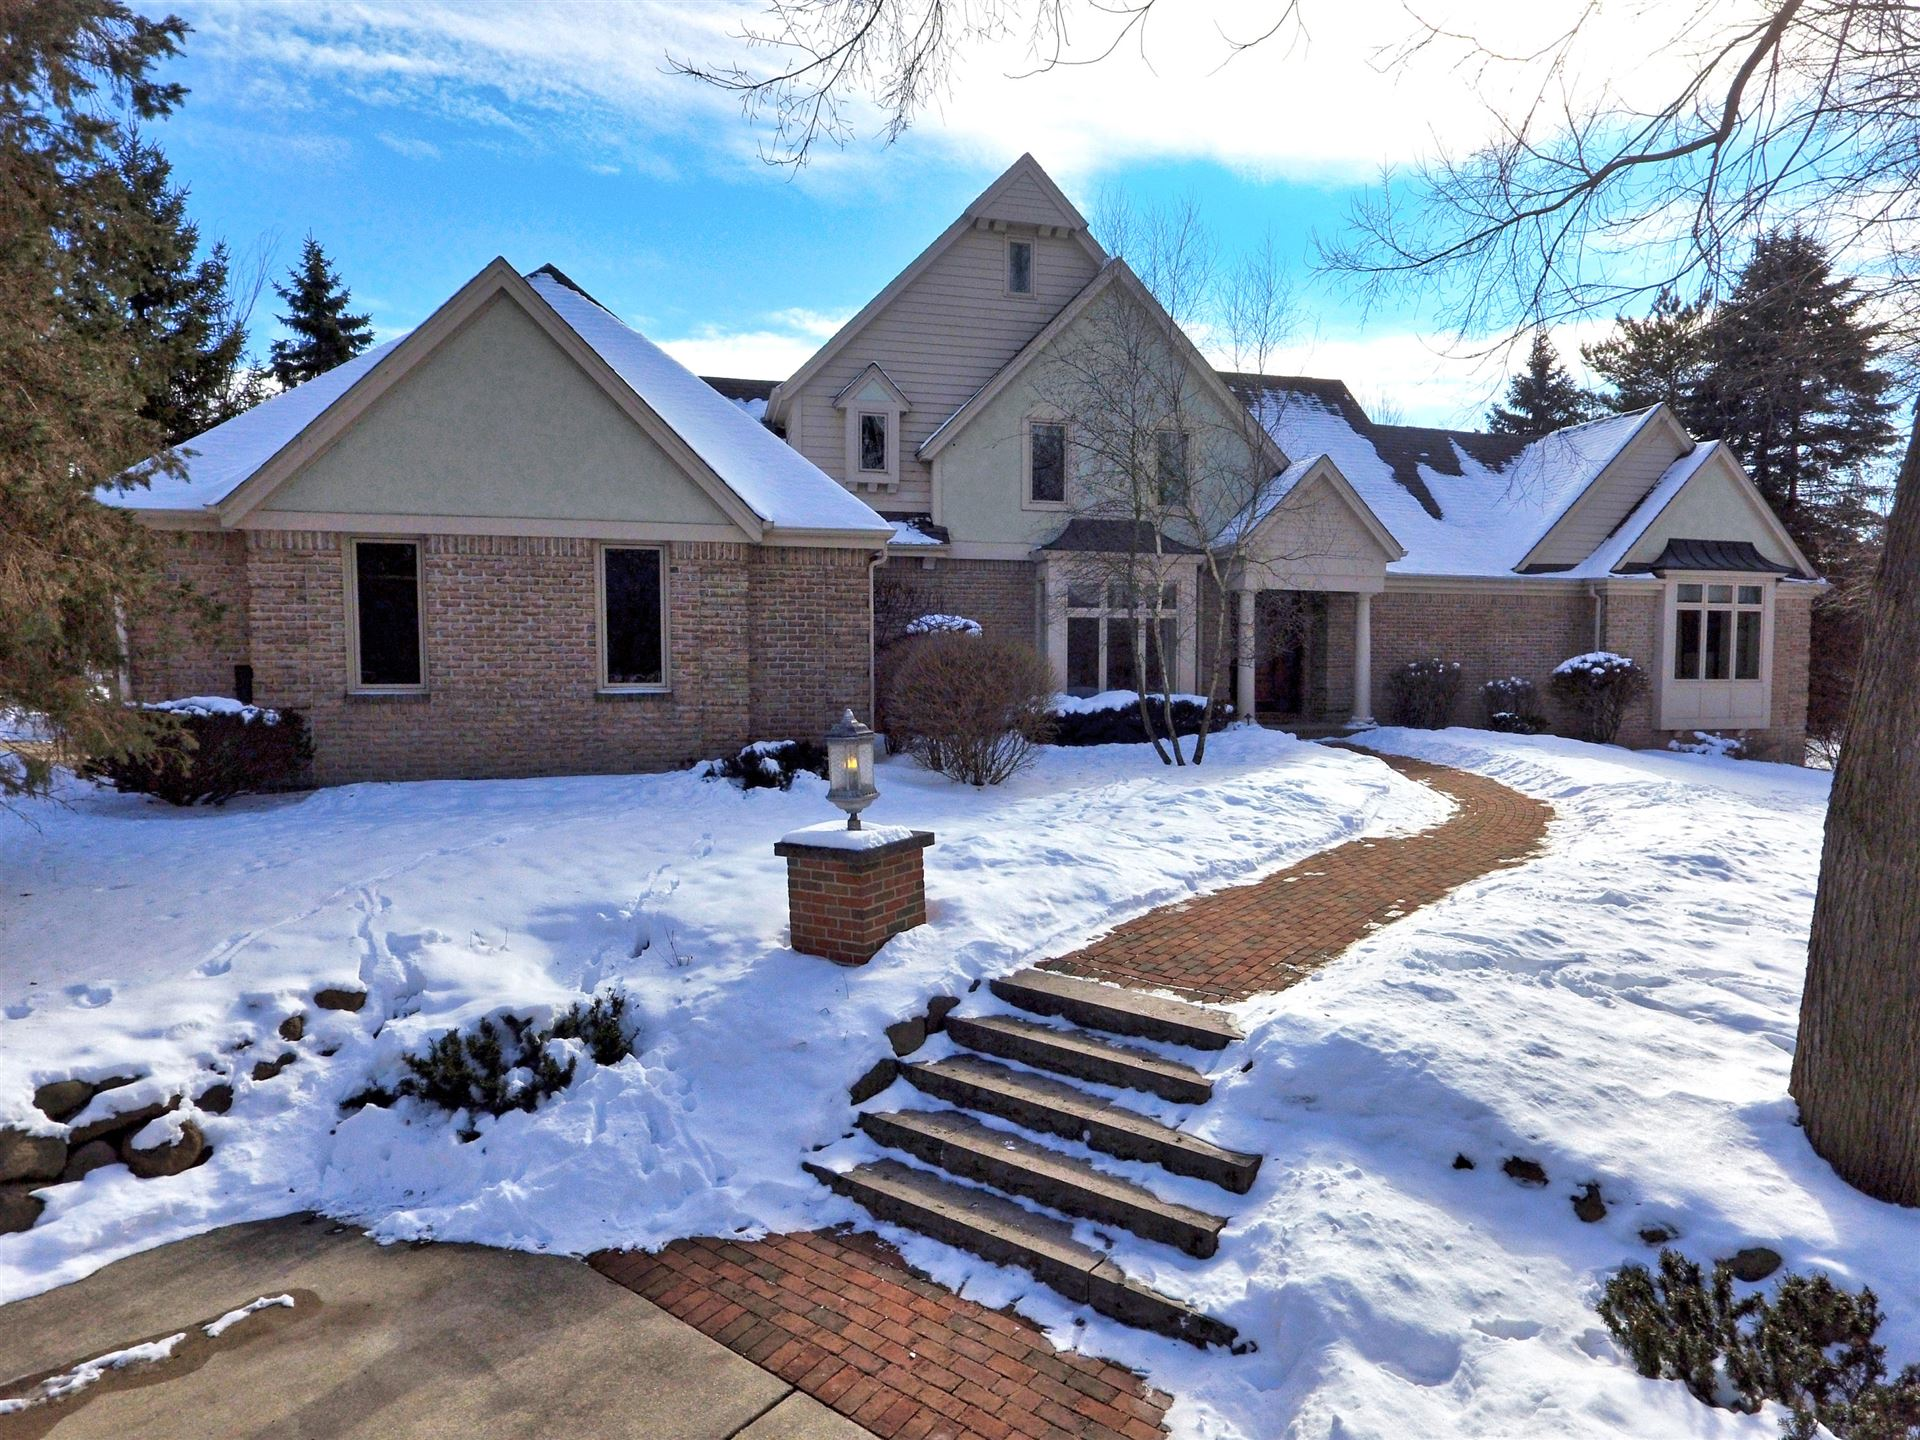 11601 N Grace Ct, Mequon, WI 53092 - #: 1691646